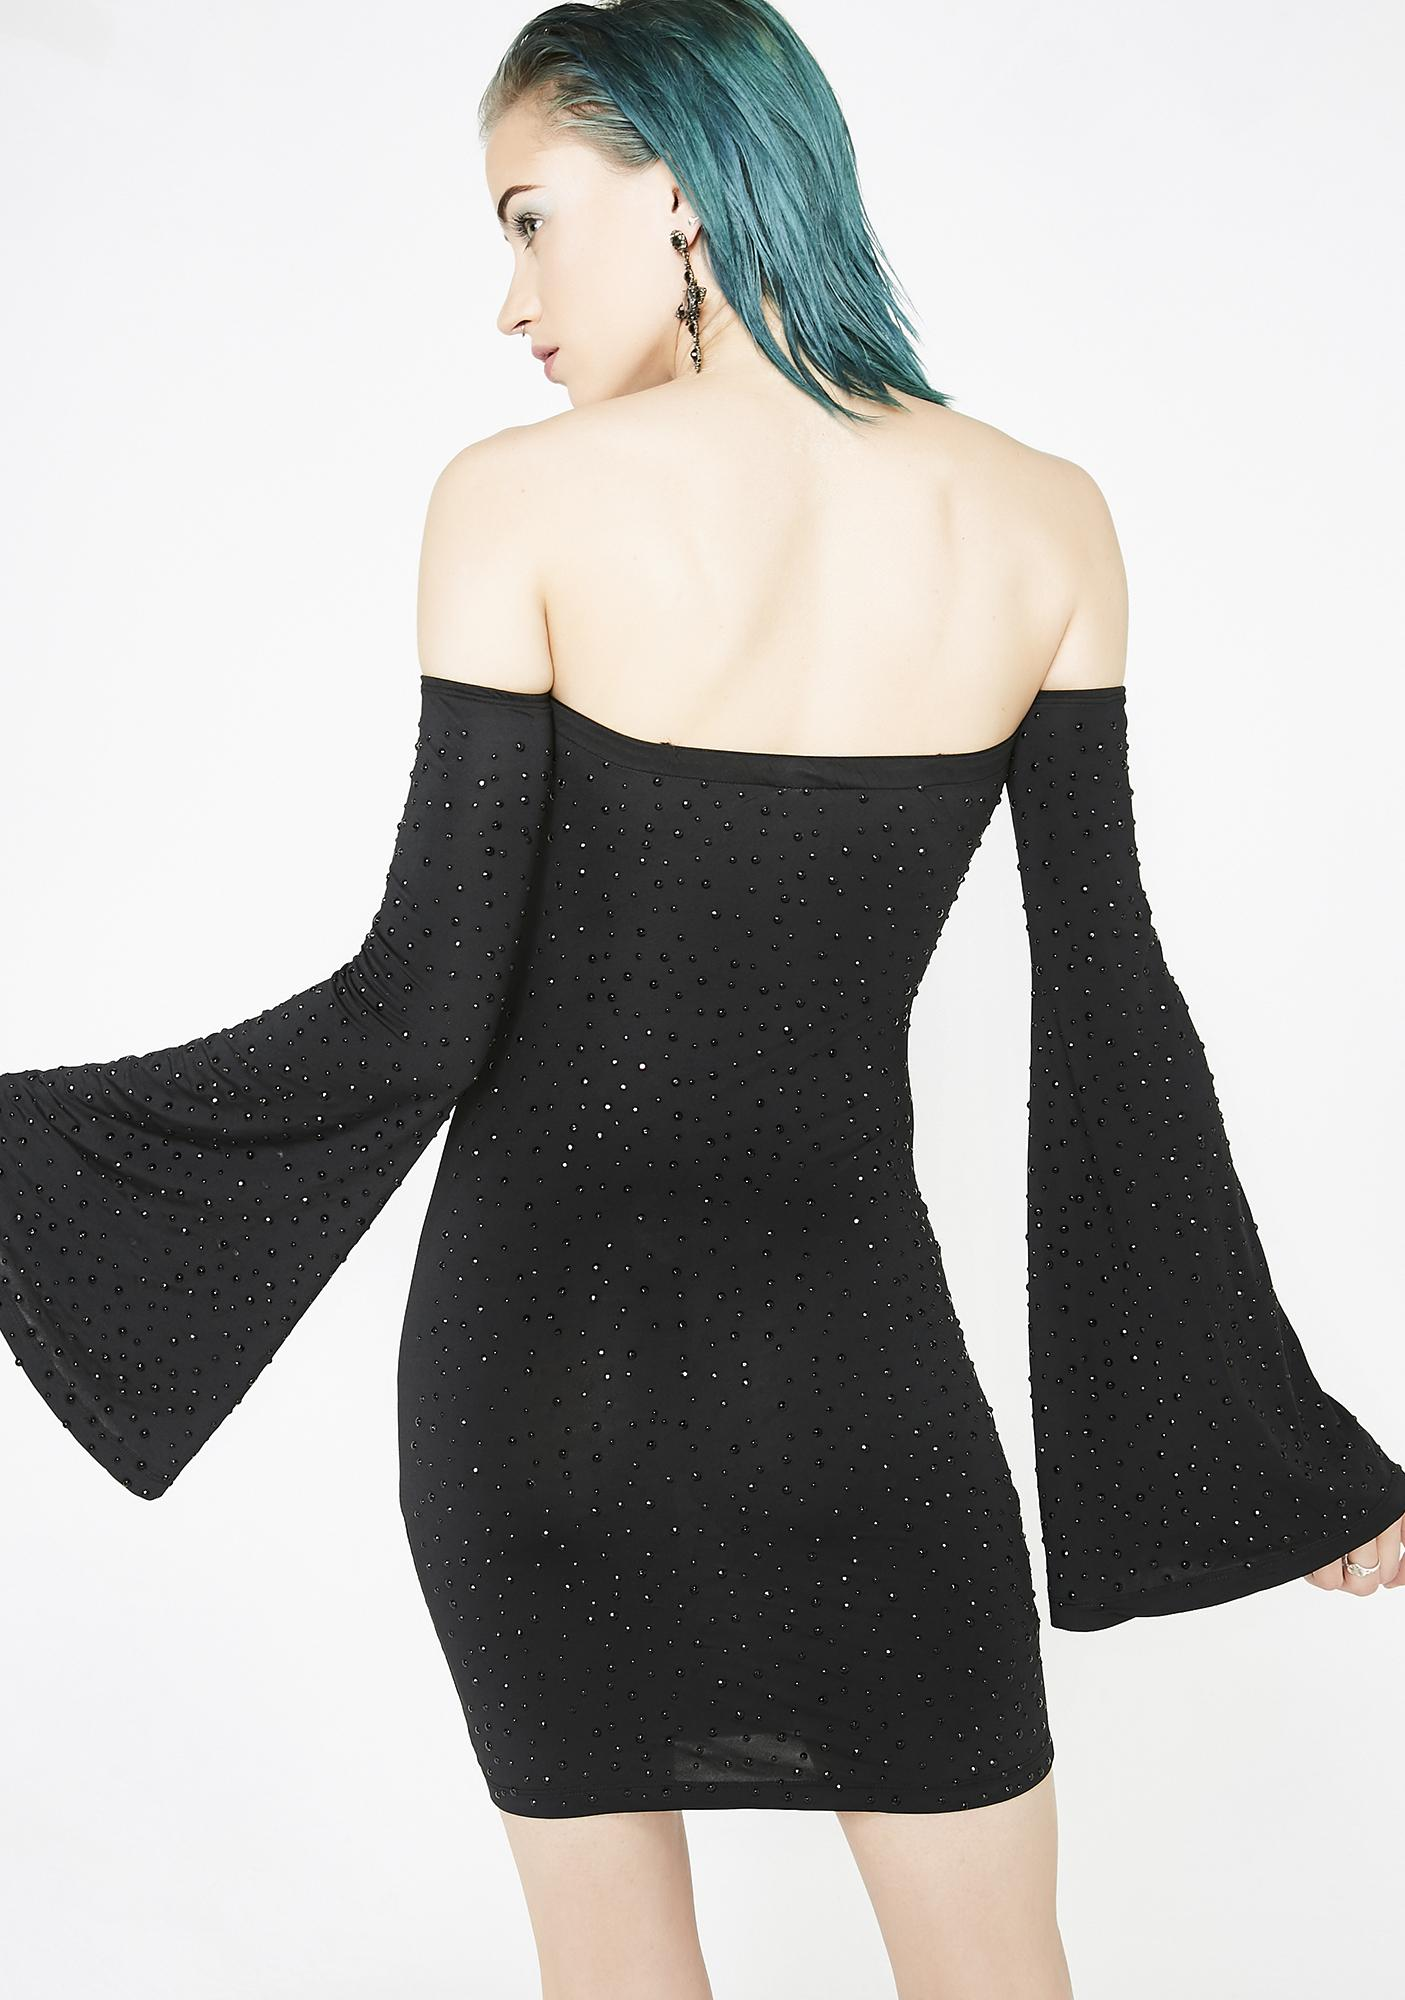 Kiki Riki Sparkle Hour Strapless Dress